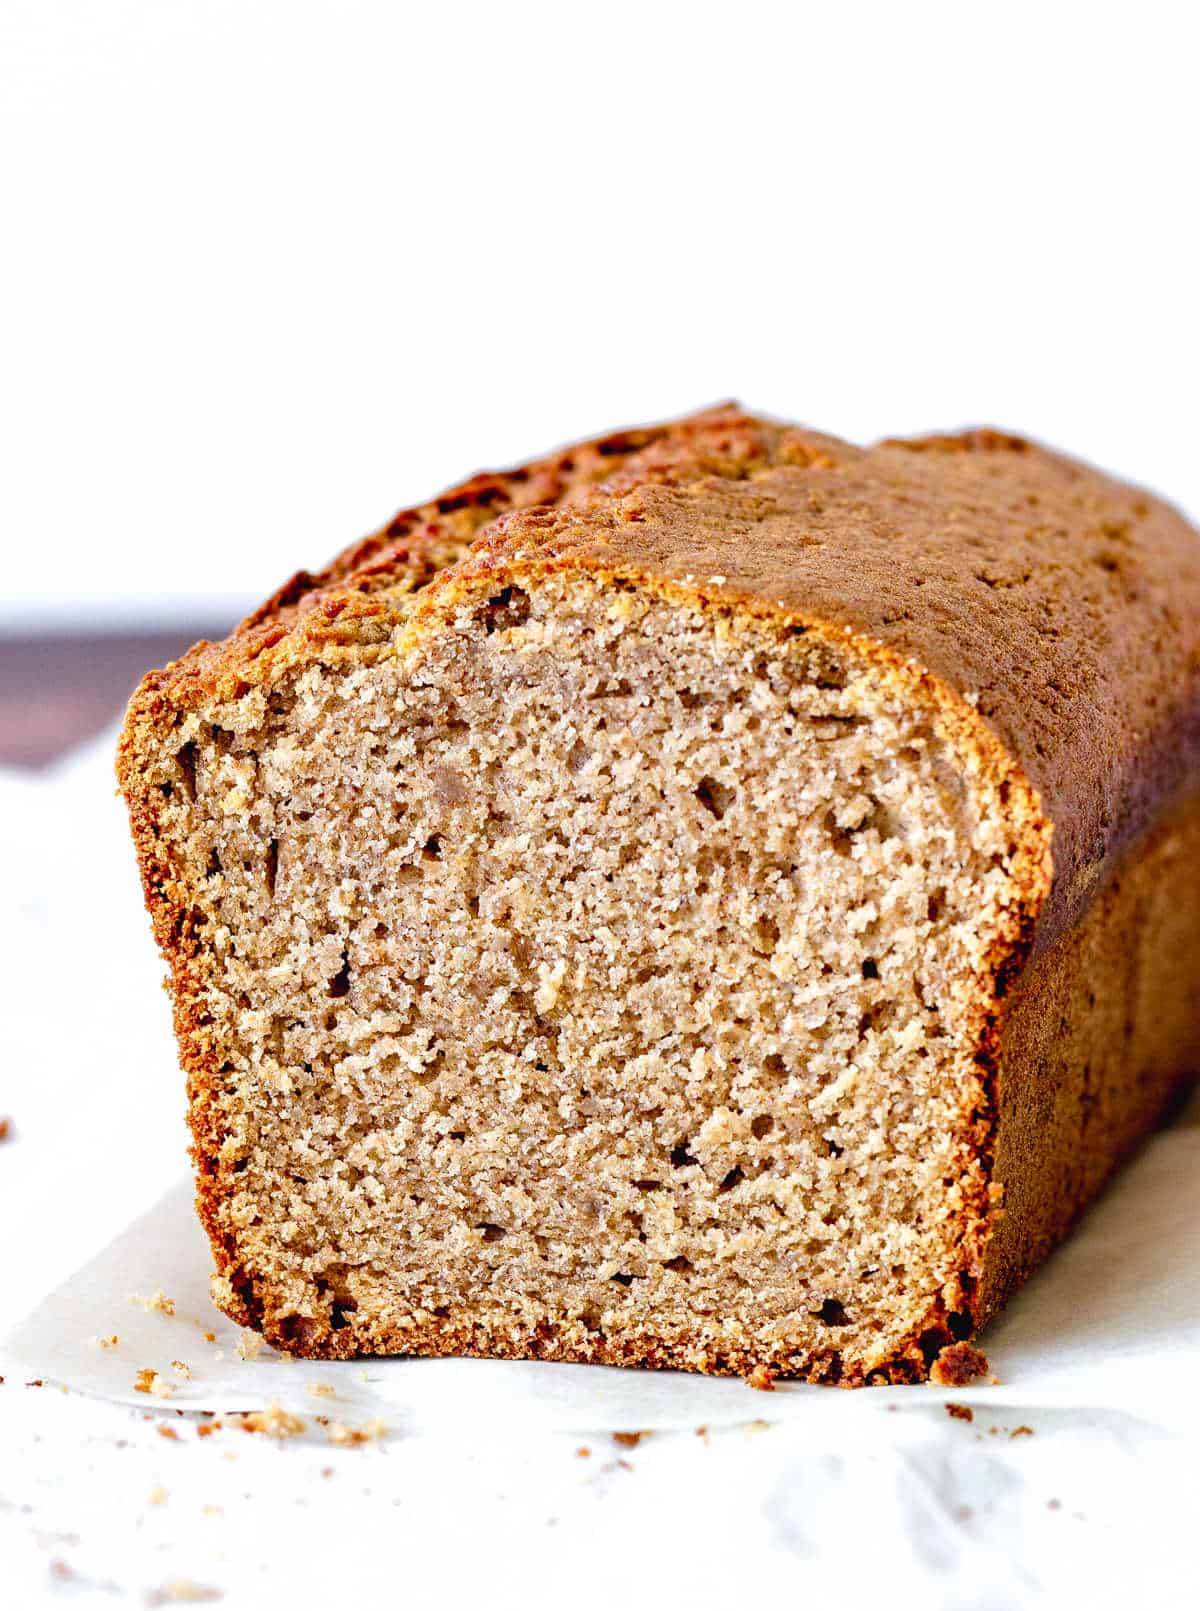 Slanted view of cut applesauce bread on white surface and background